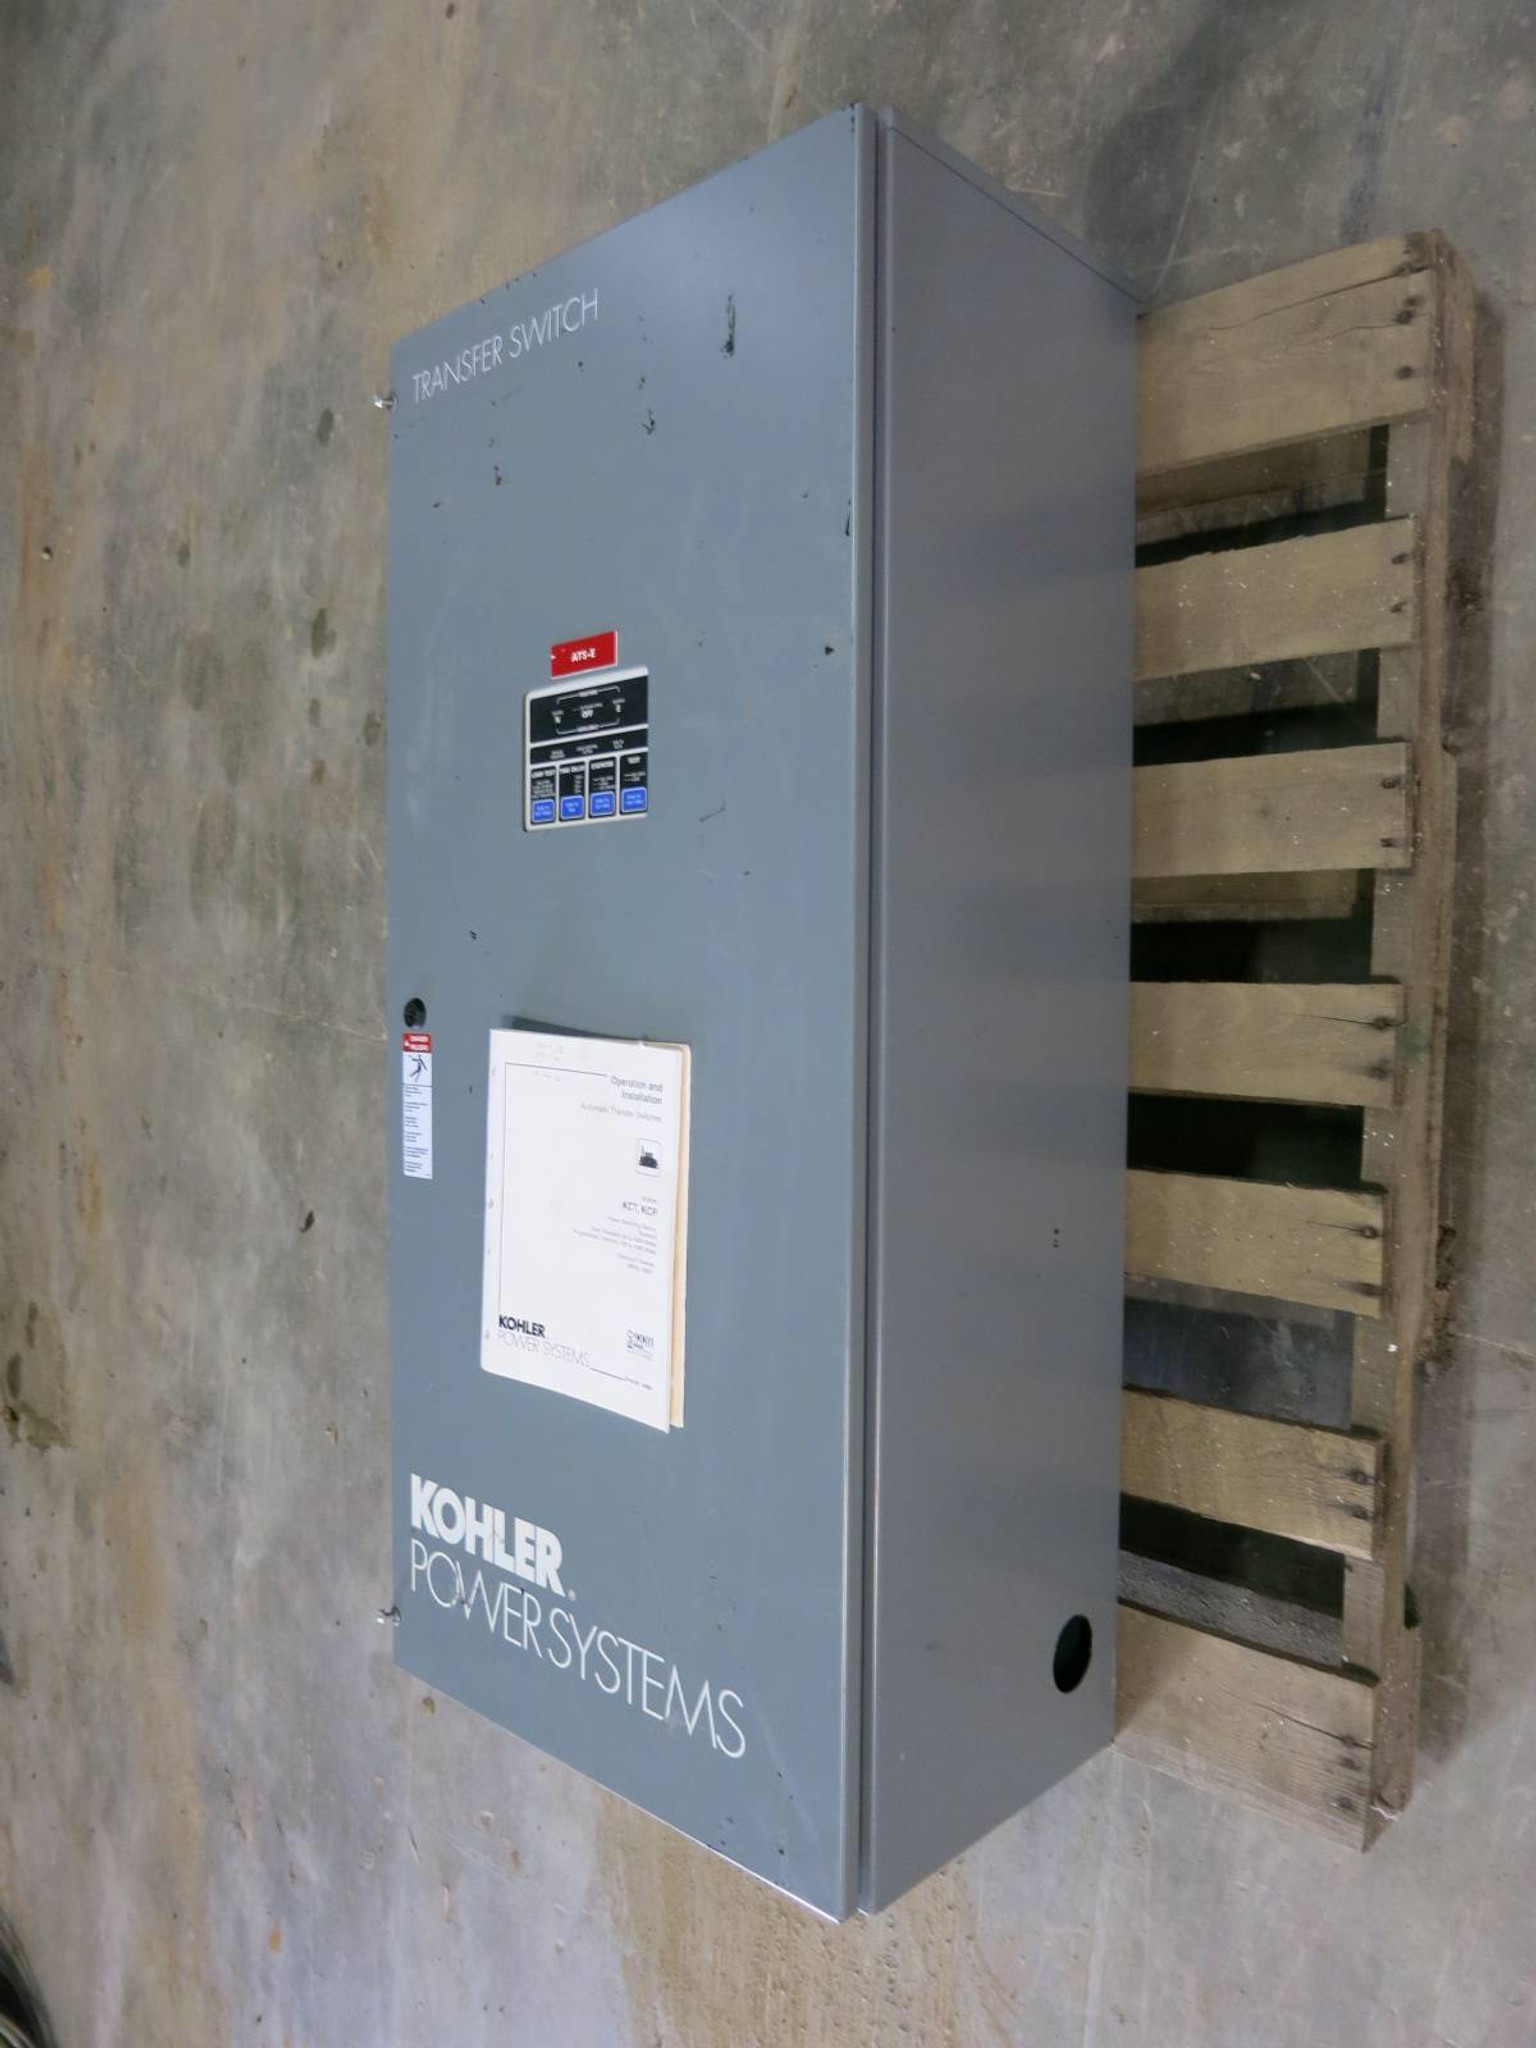 Kohler 225 Amp Automatic Transfer Switch 480v Kct Amta 0225s 4 Wire On 3 Phase Wiring Https D3d71ba2asa5ozcloudfrontnet 12014161 Images Np1918